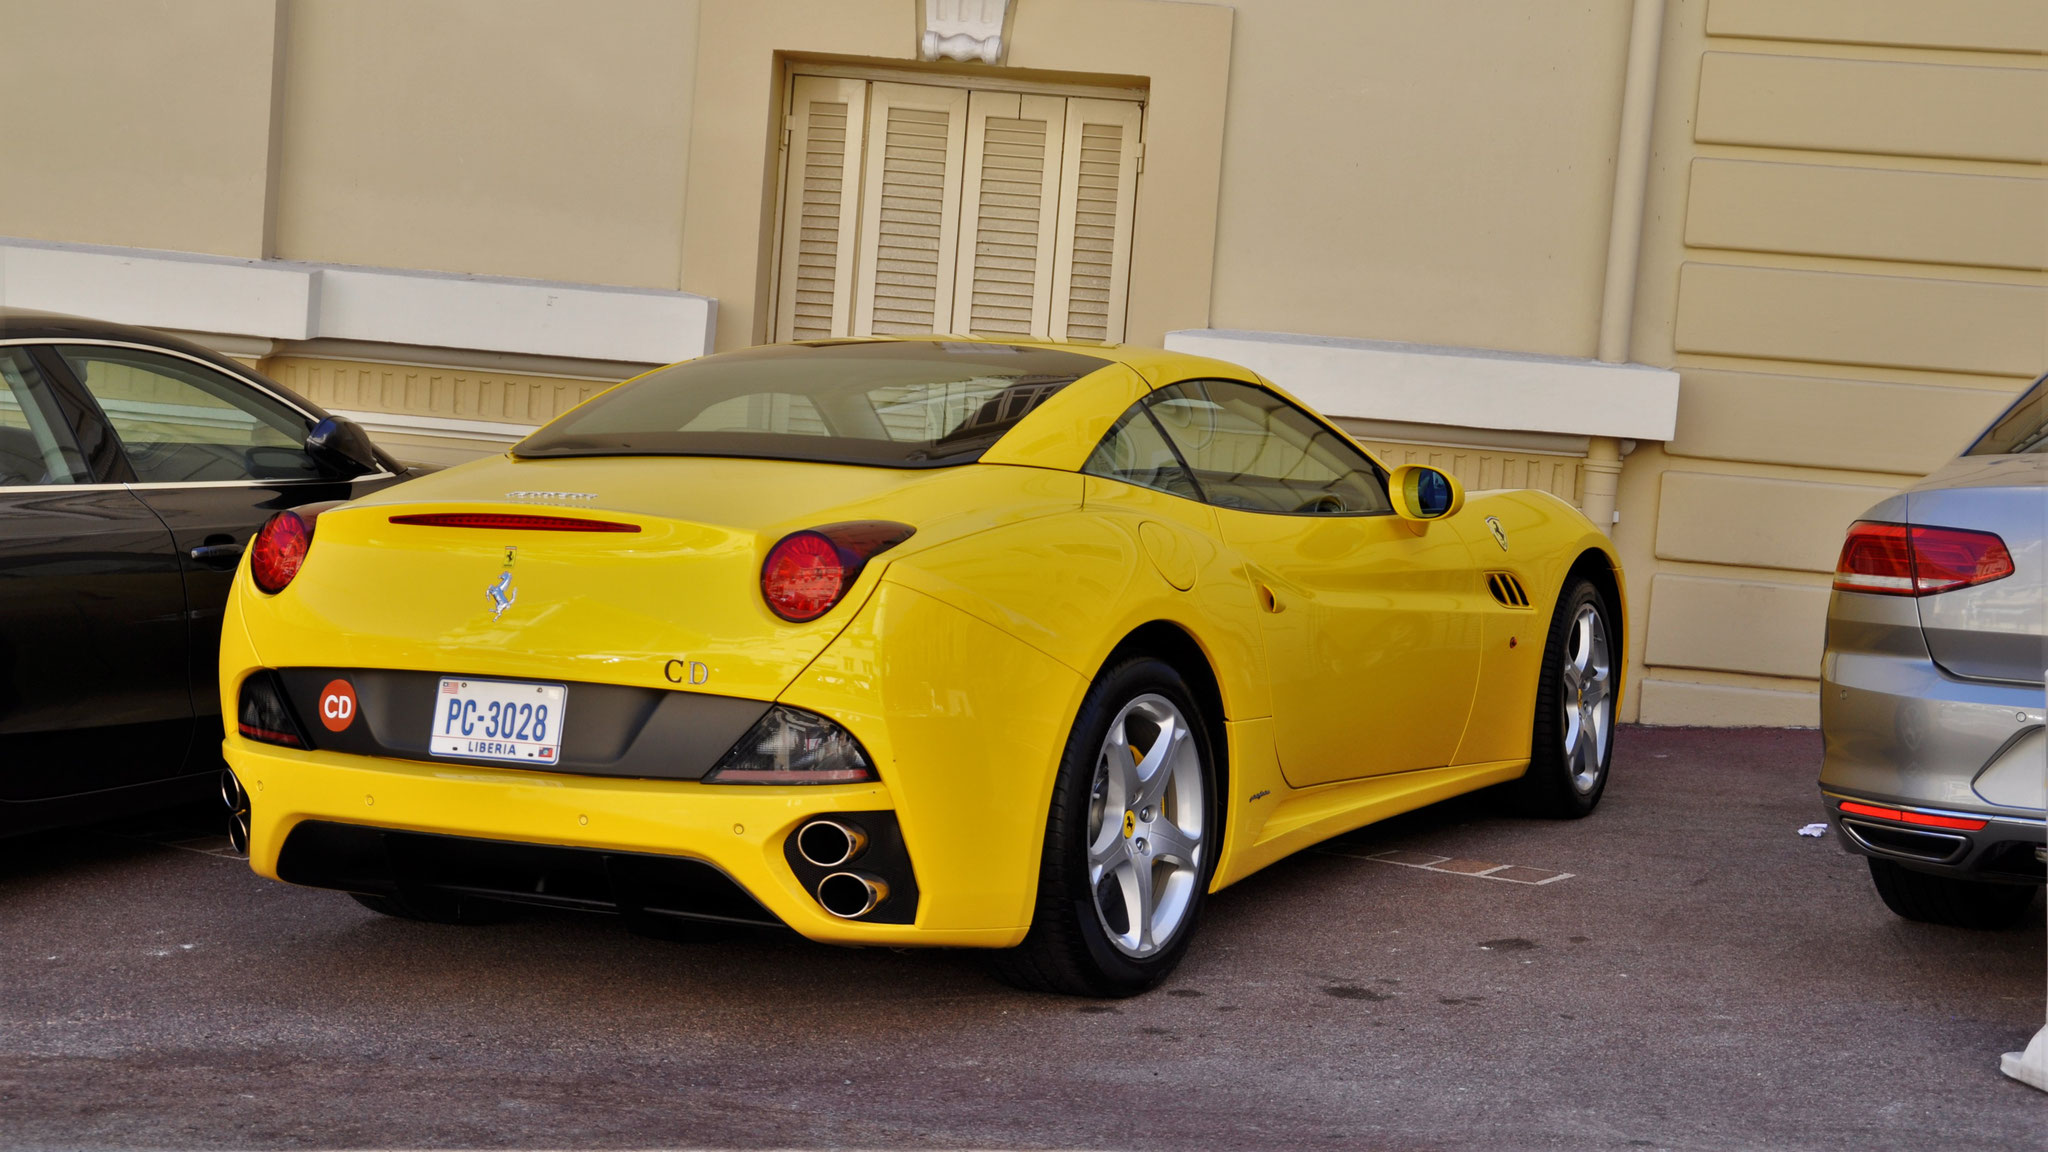 Ferrari California - PC-3028 (LIB)